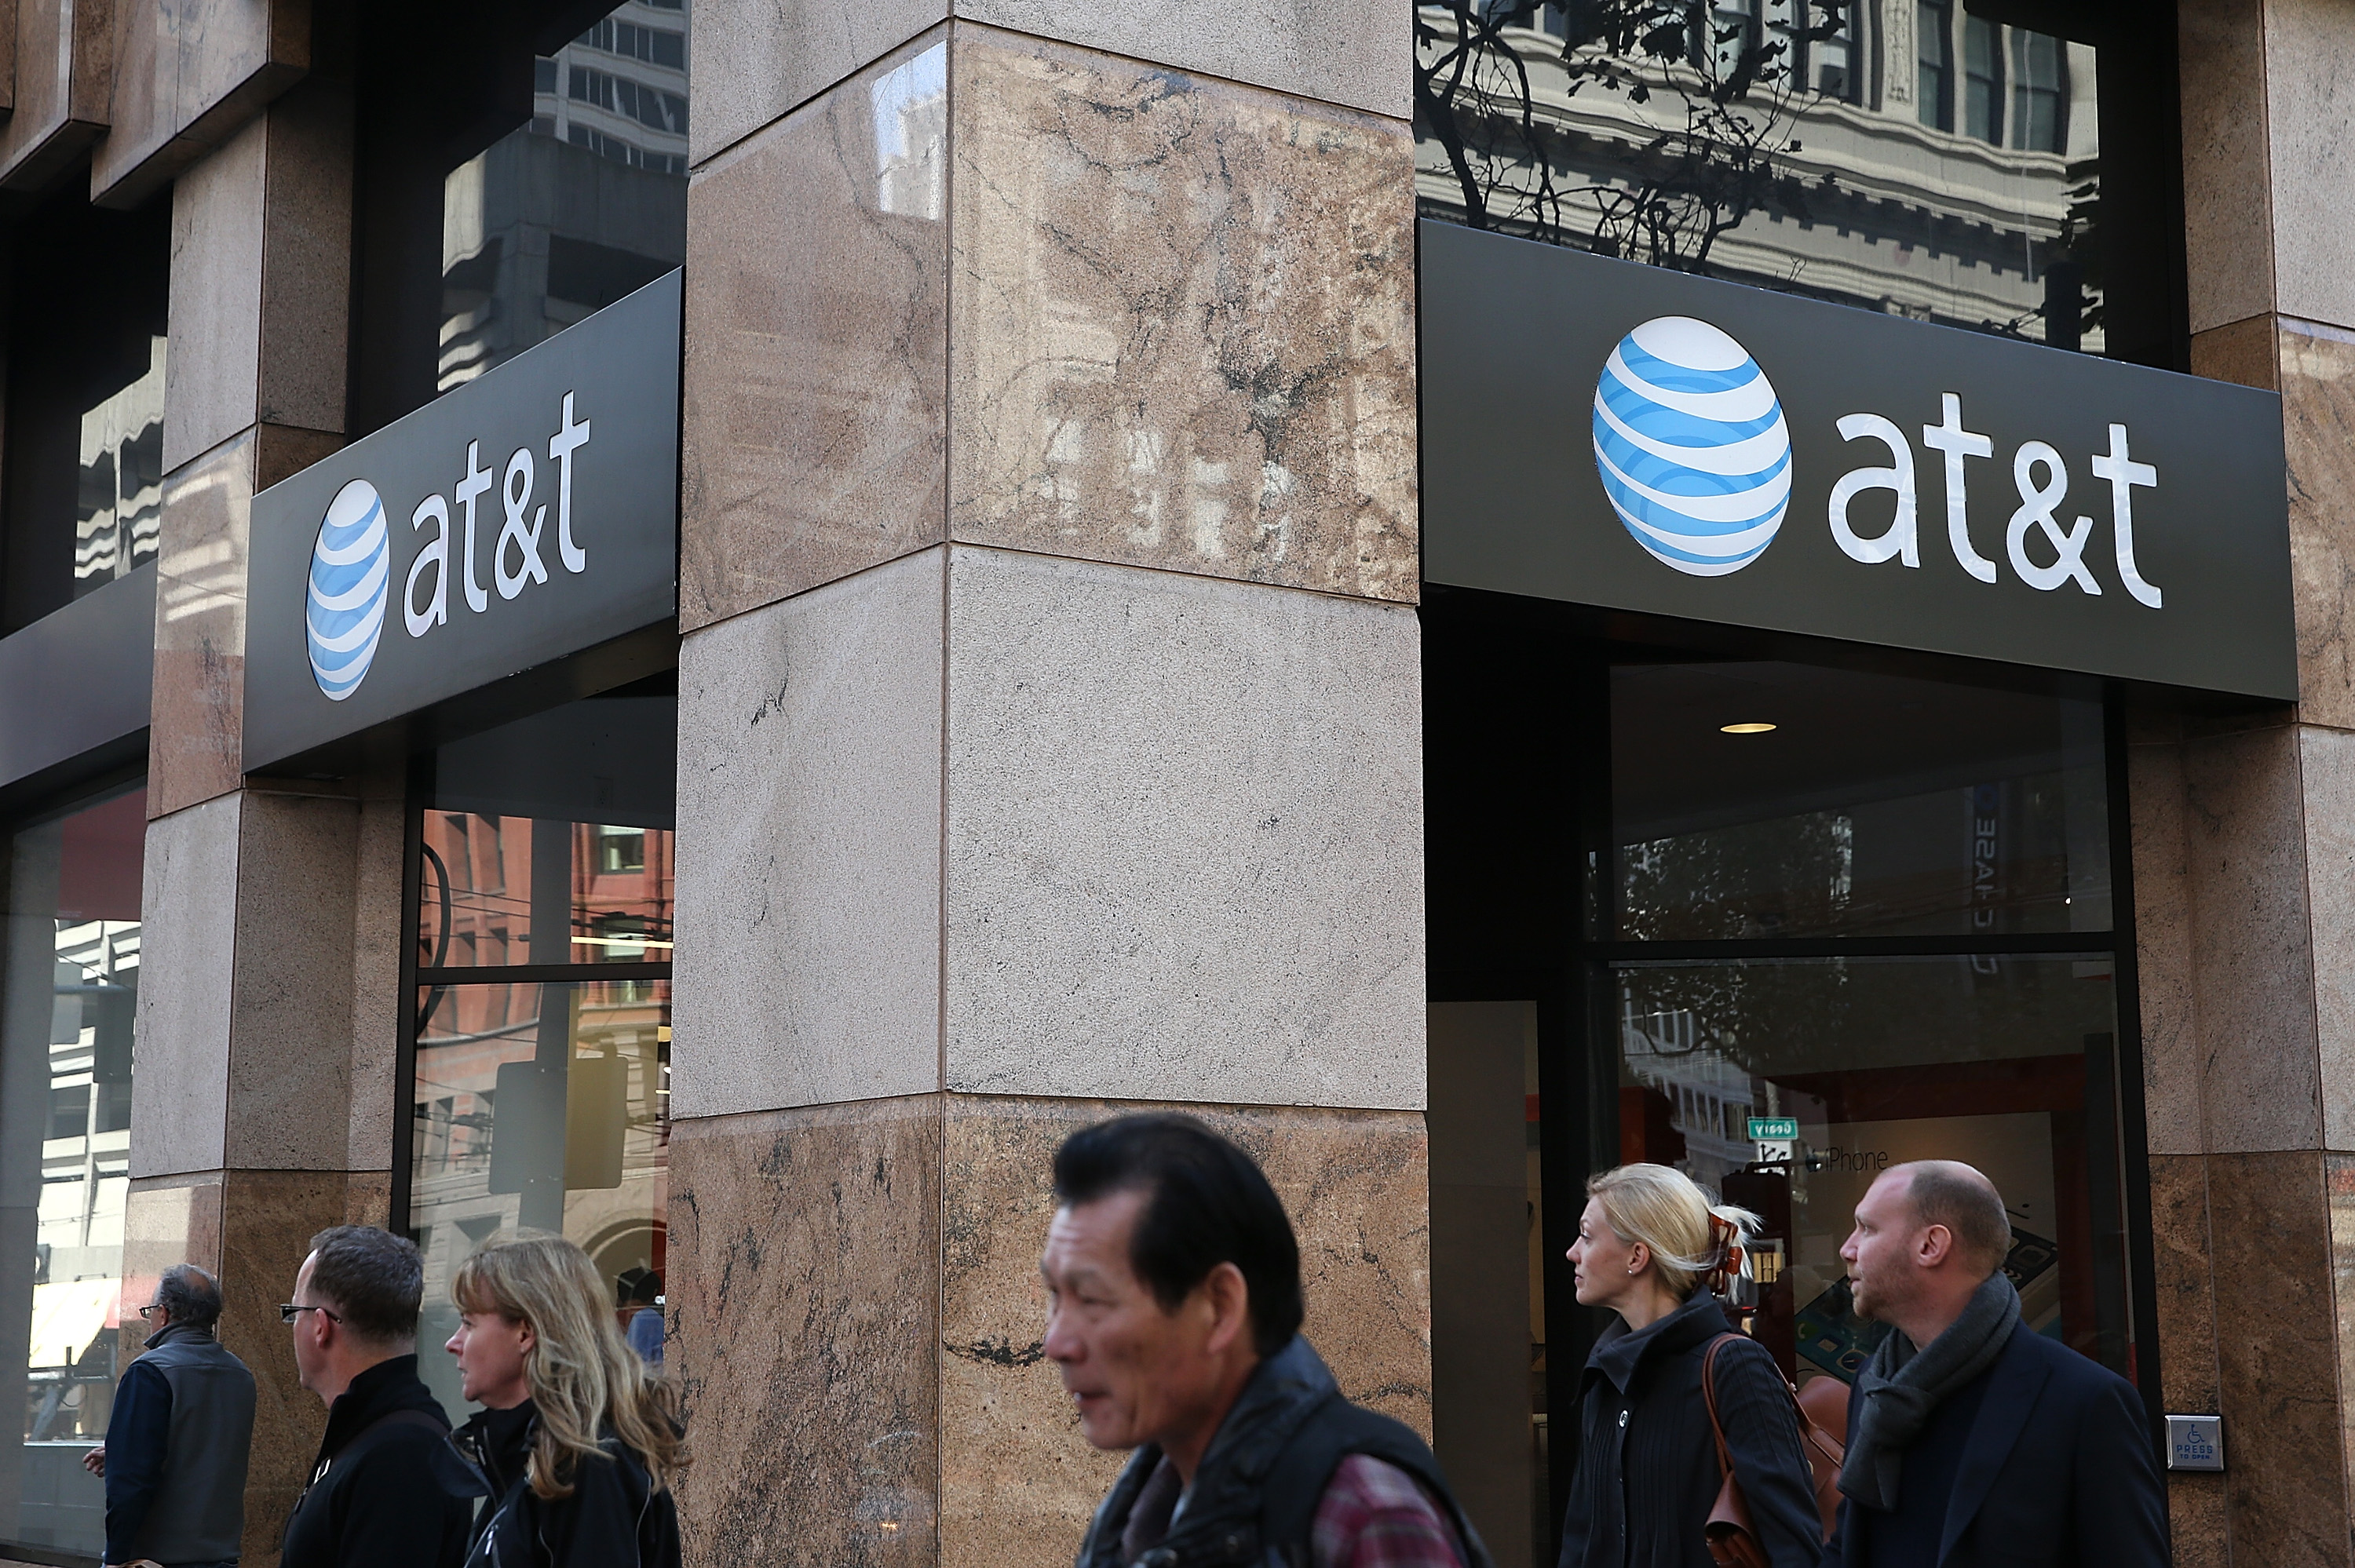 Pedestrians walk by an AT&T store on Oct. 23, 2013 in San Francisco.